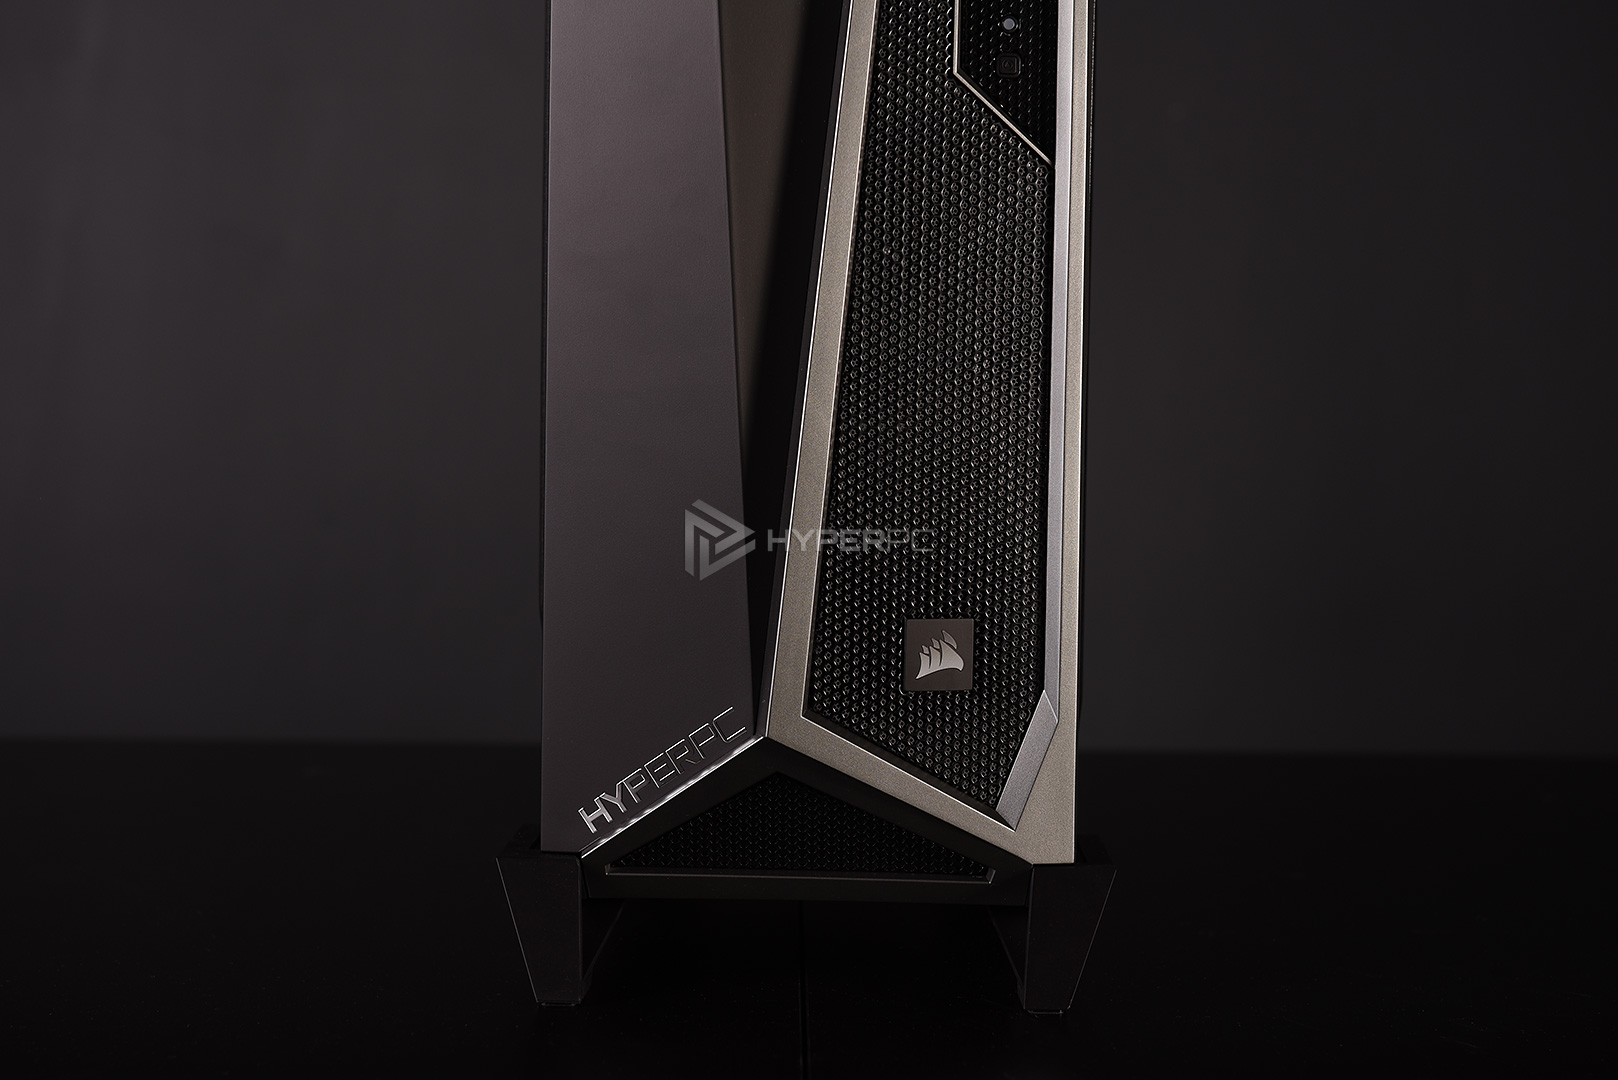 corsair spec-alpha black-silver live photo 05